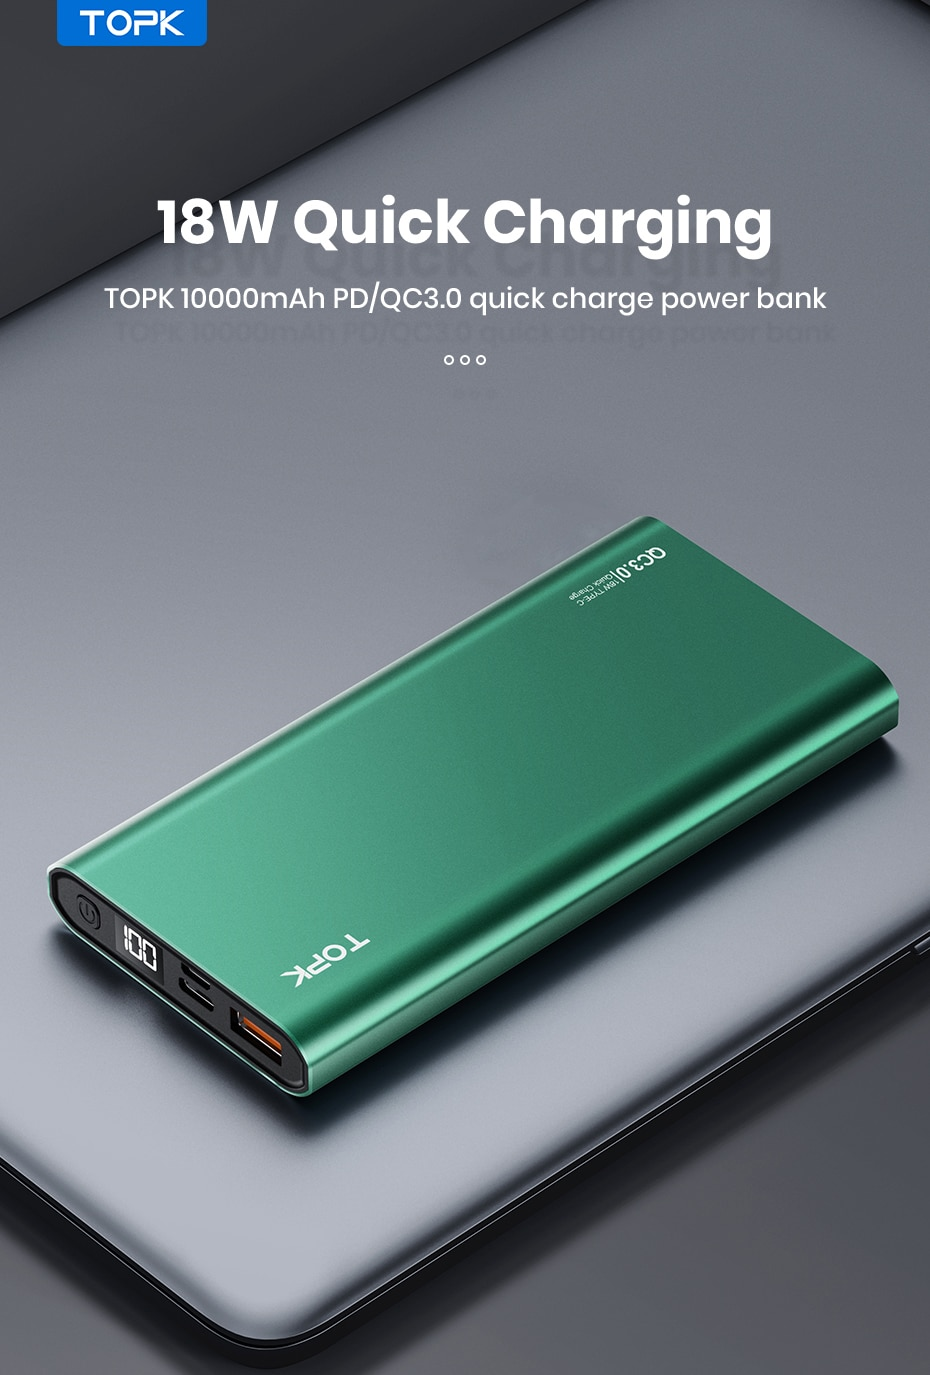 H580f2d73840e40d08626bcde36f5719aW - TOPK I1006P Power Bank 10000mAh Portable Charger LED External Battery PowerBank PD Two-way Fast Charging PoverBank for Xiaomi mi